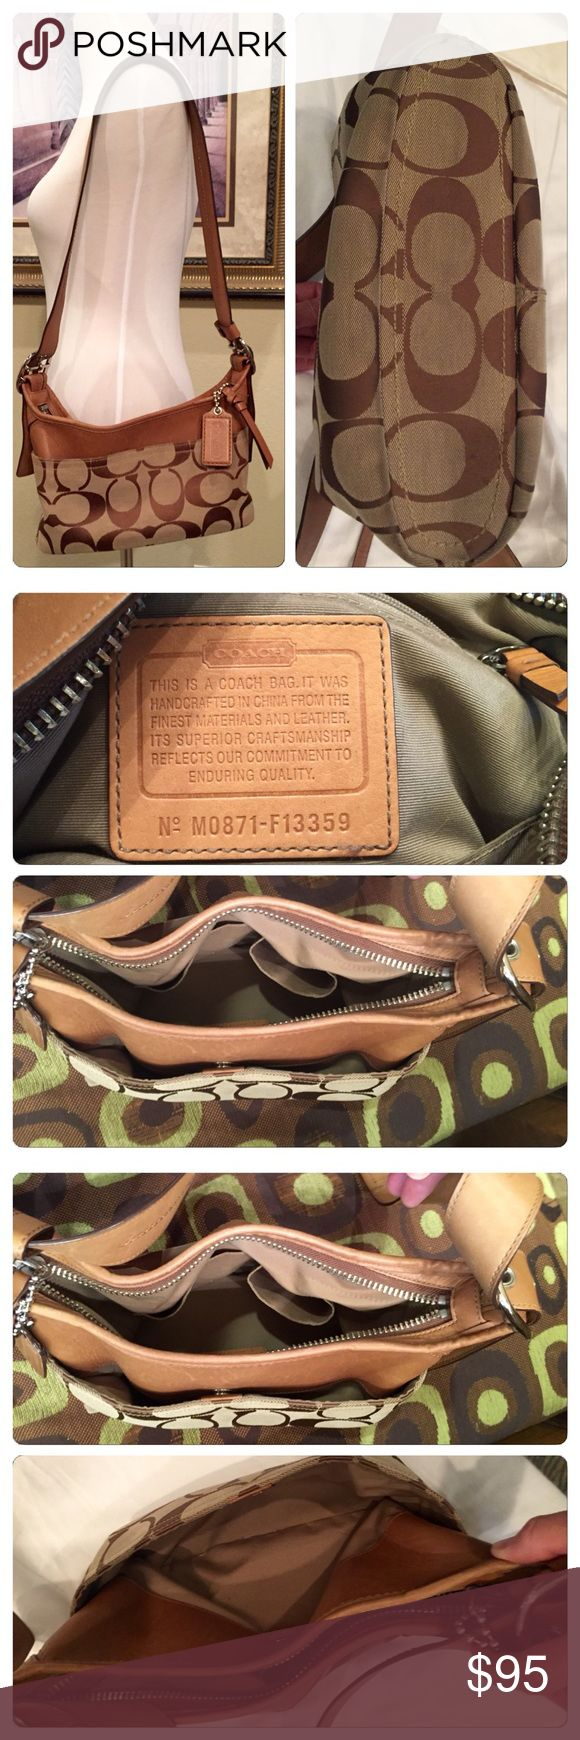 Coach Shoulder Bag Purchased at Destin Outlet. Approximately 10x8. Great condition Coach Bags Shoulder Bags